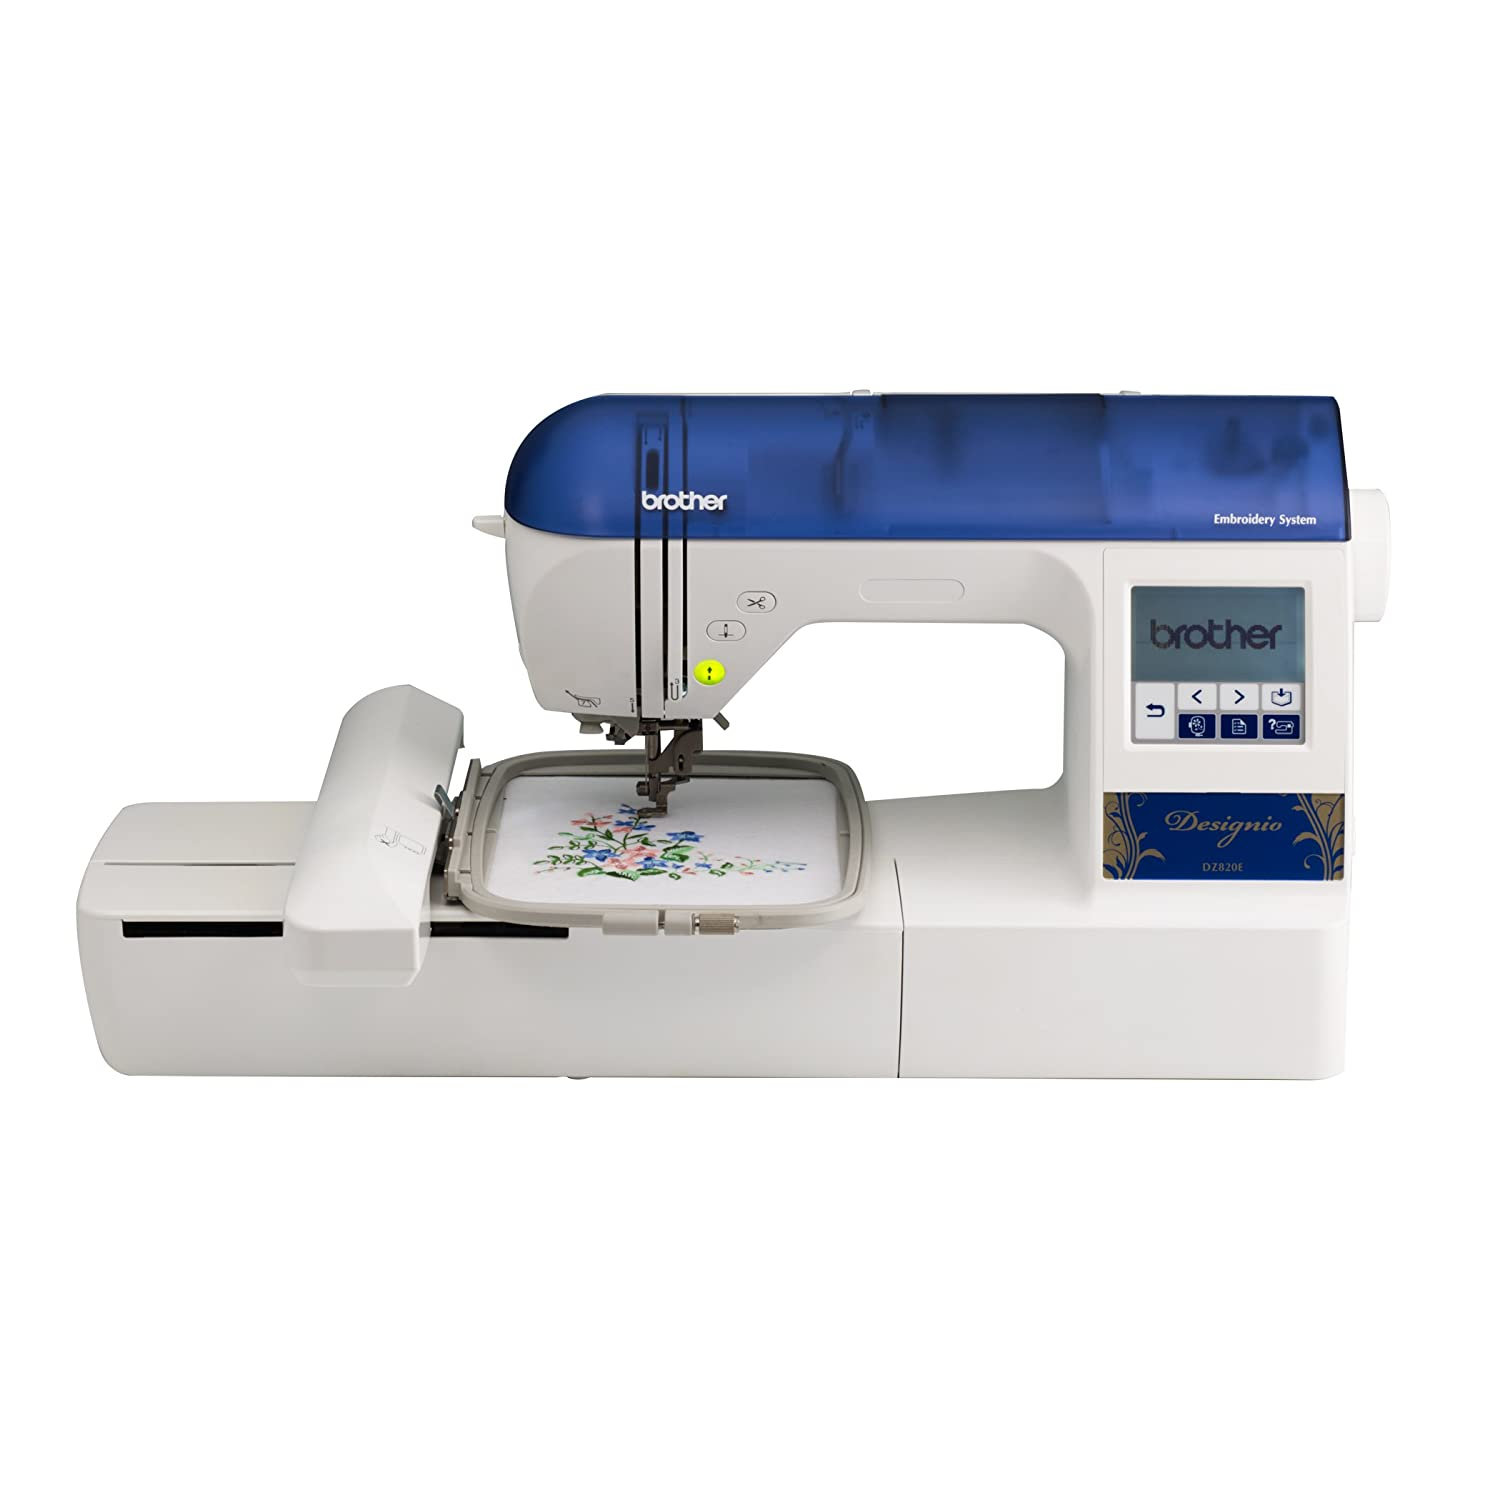 5. Brother Designio Series DZ820E Embroidery Only Machine